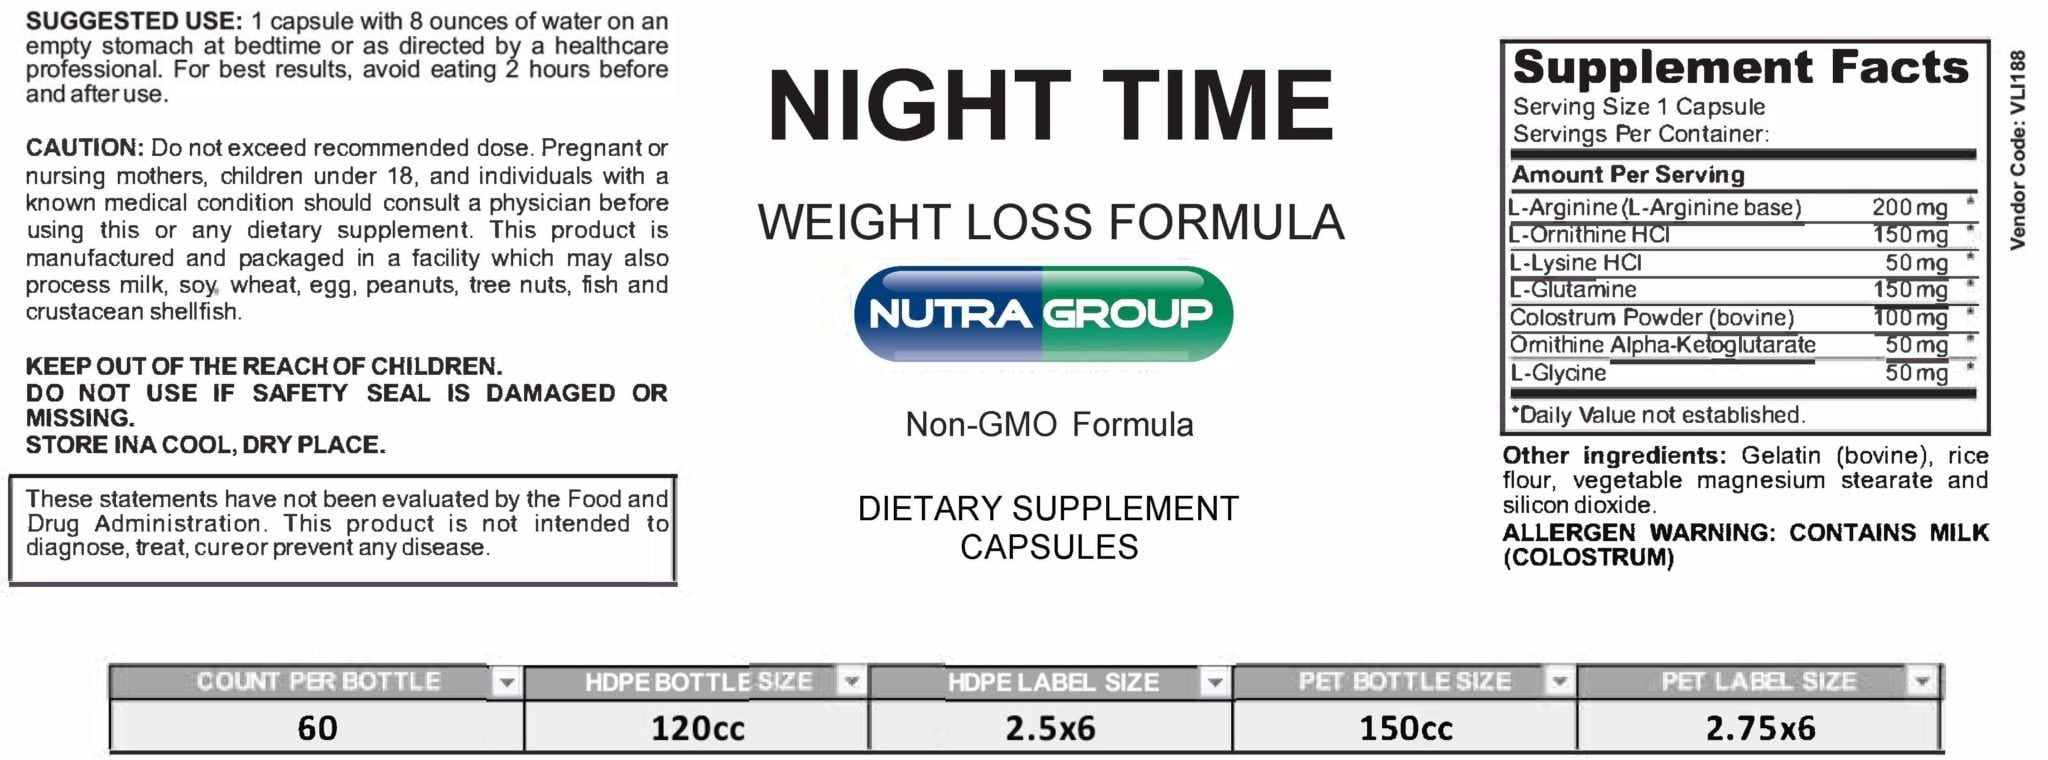 Private Label Night Time Weight Loss Supplement